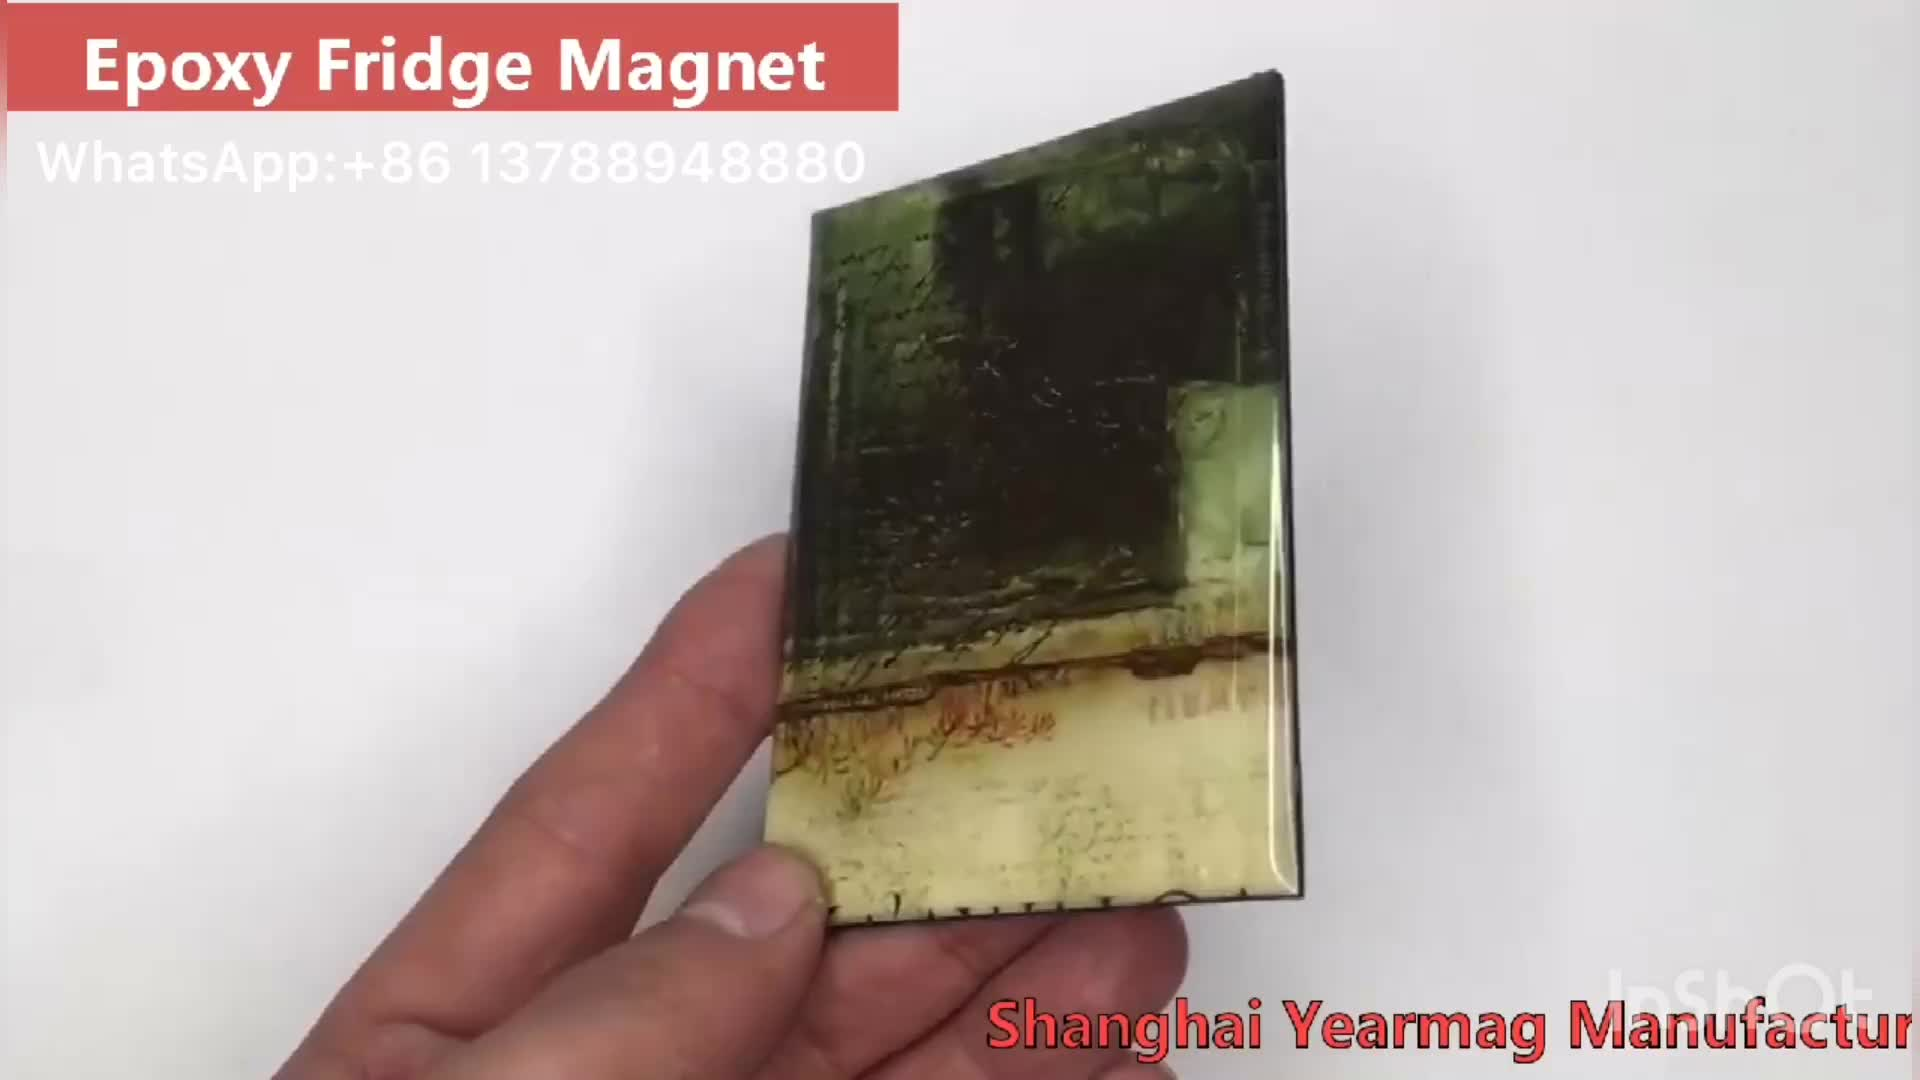 Professional Factory Customize Fridge Magnets Type Epoxy Embossed Rubber Magnet on Refrigerator for Business Gifts